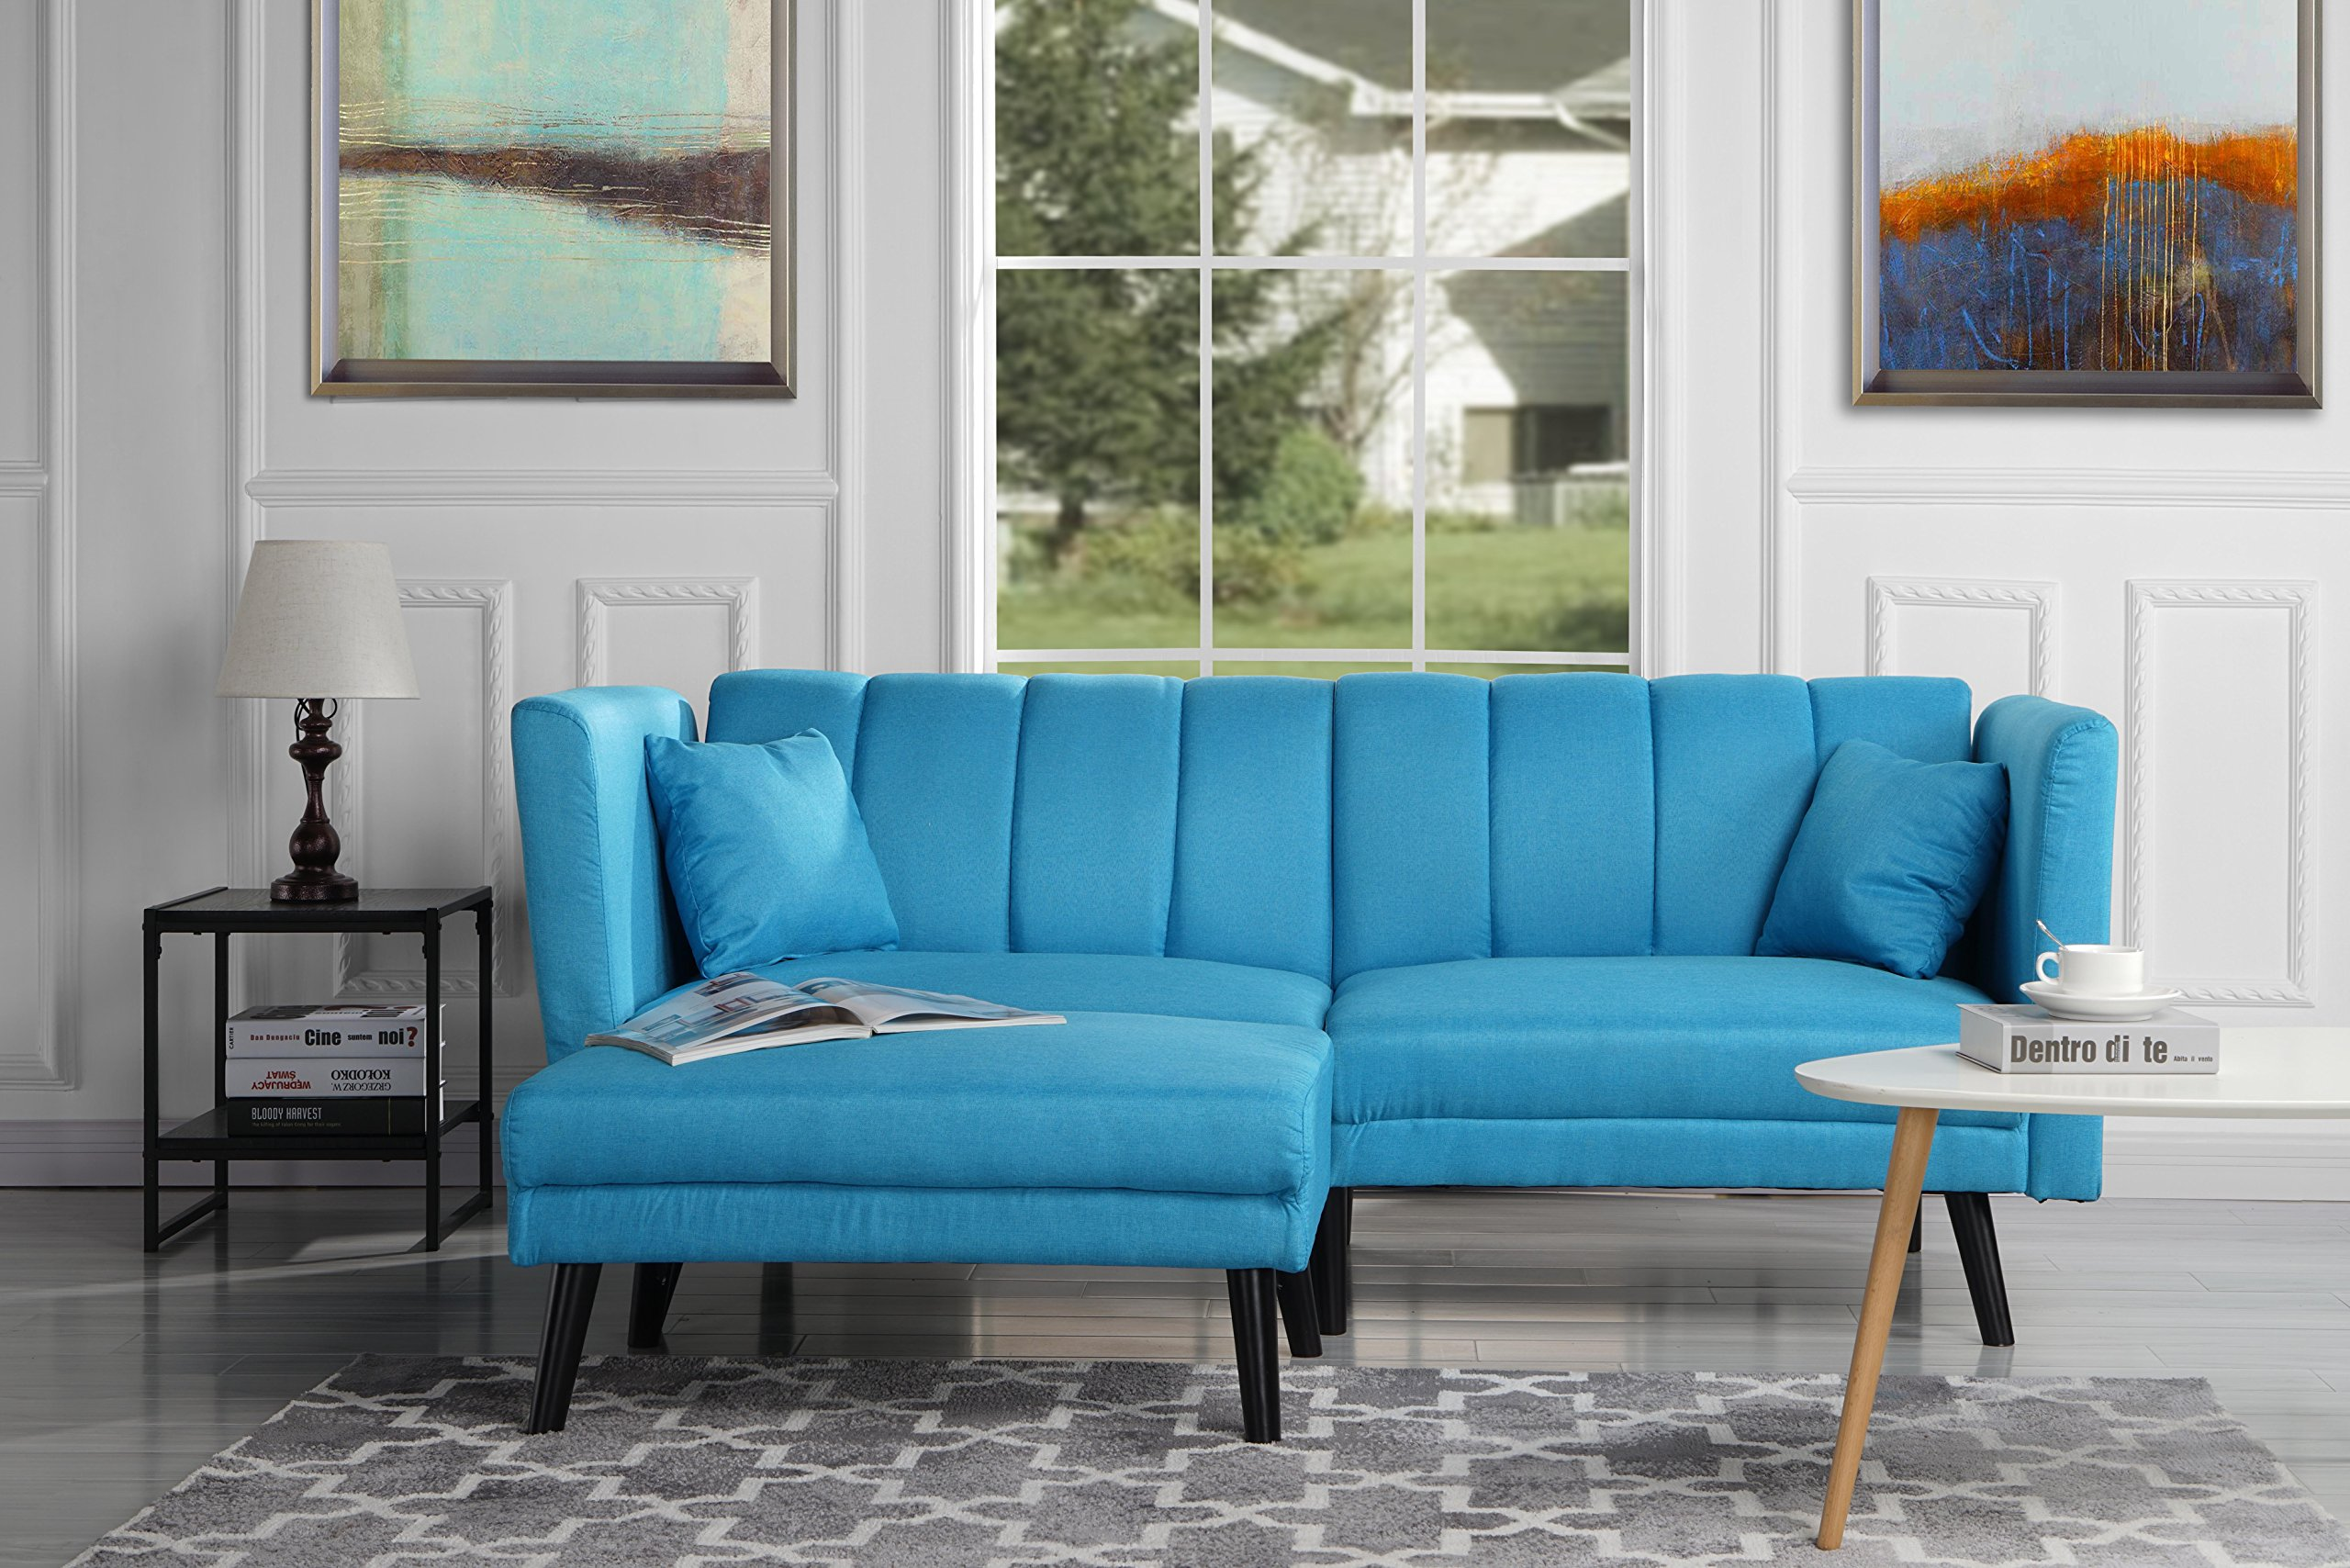 Mid-Century Modern Linen Fabric Futon Sofa Bed, Living Room Sleeper Couch (Sky Blue) by DIVANO ROMA FURNITURE